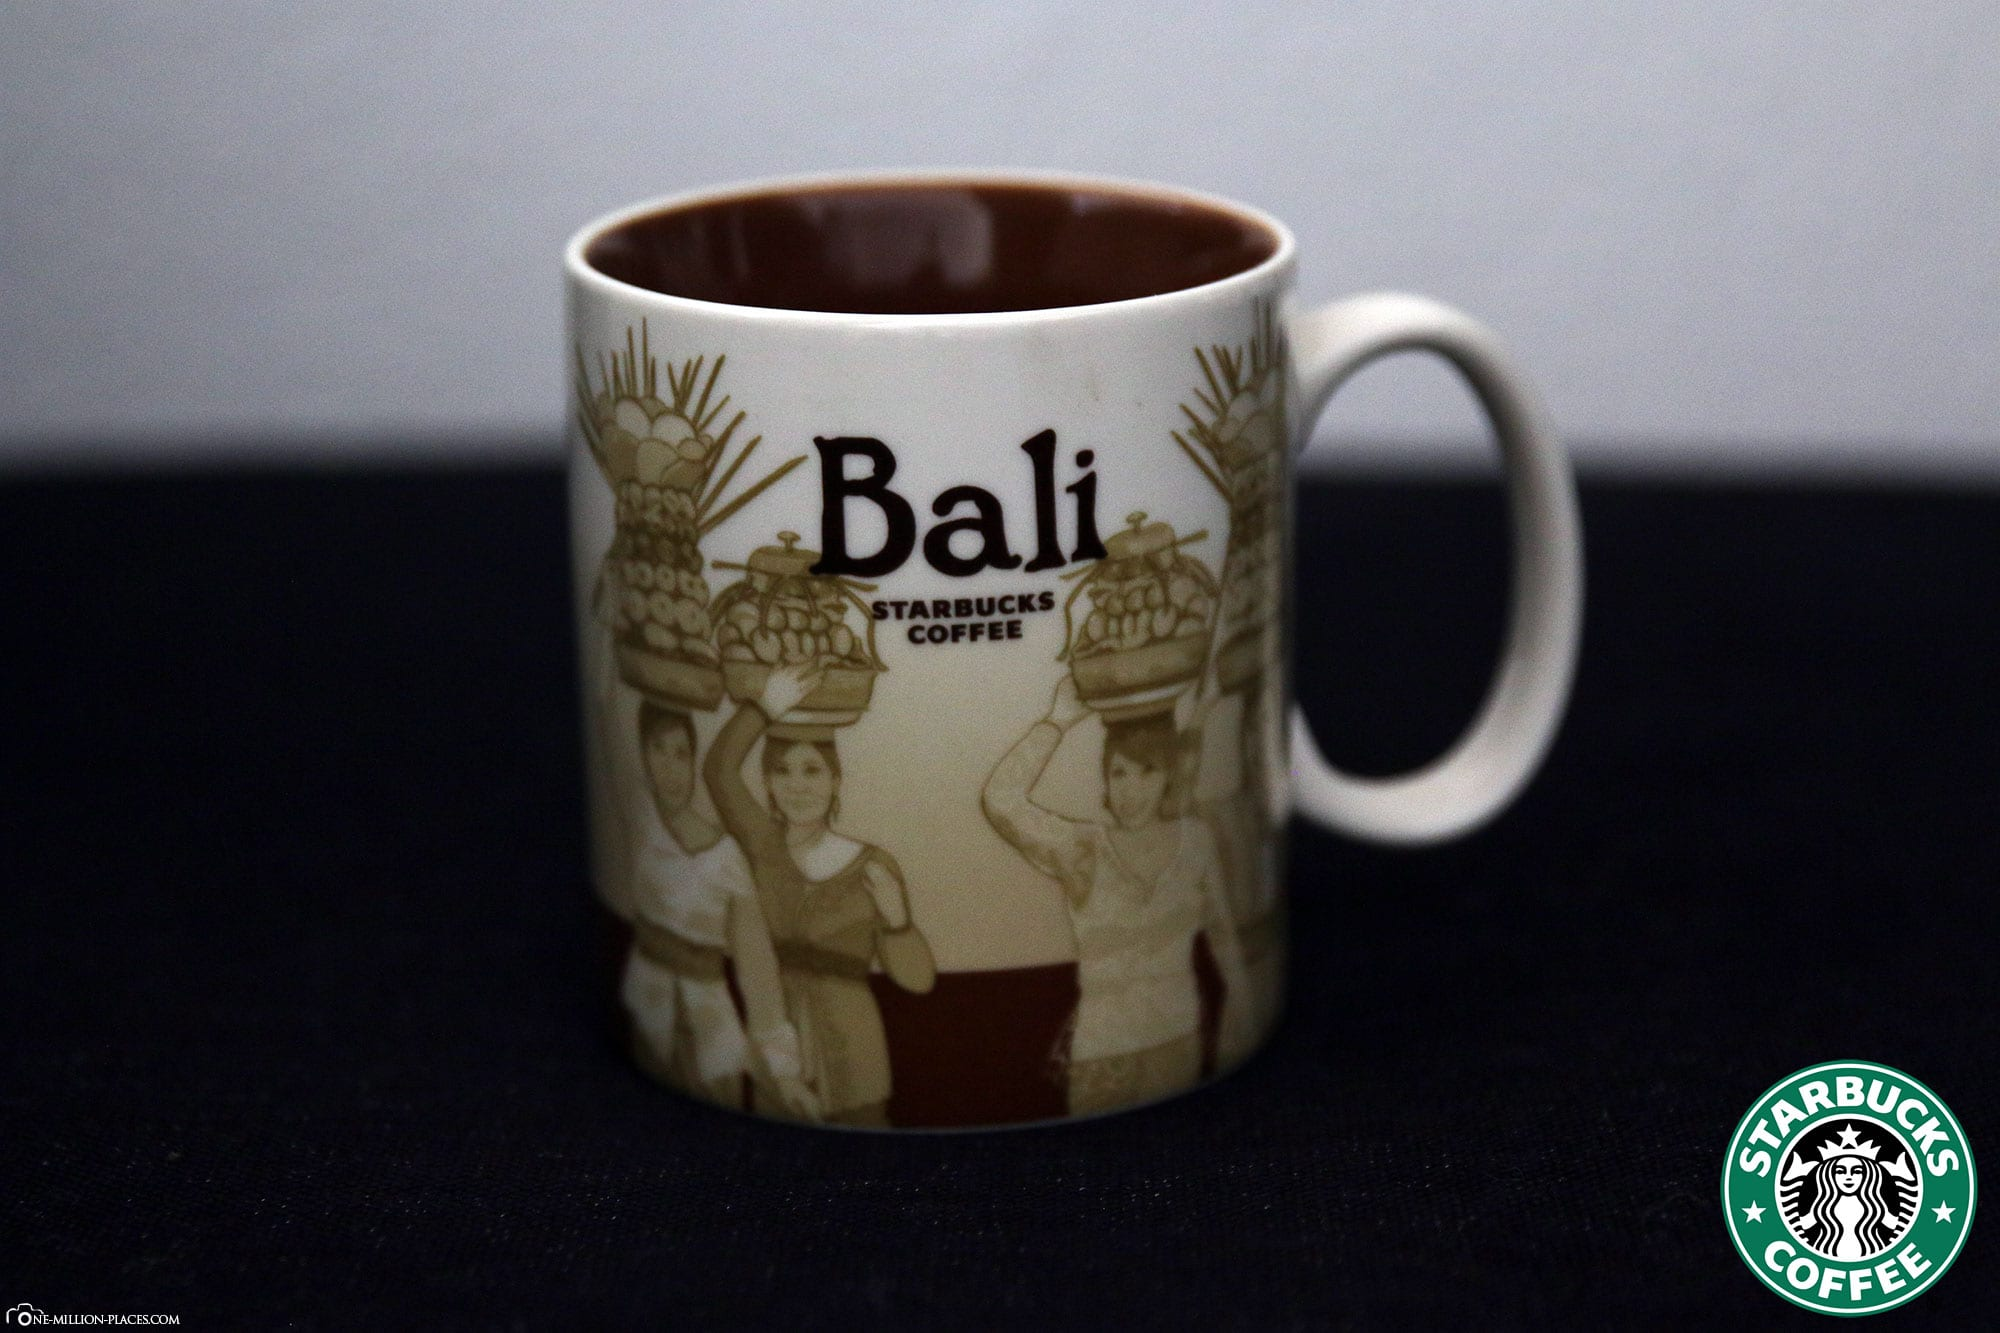 Bali, Starbucks Tasse, Global Icon Serie, City Mugs, Sammlung, Indonesien, Reisebericht